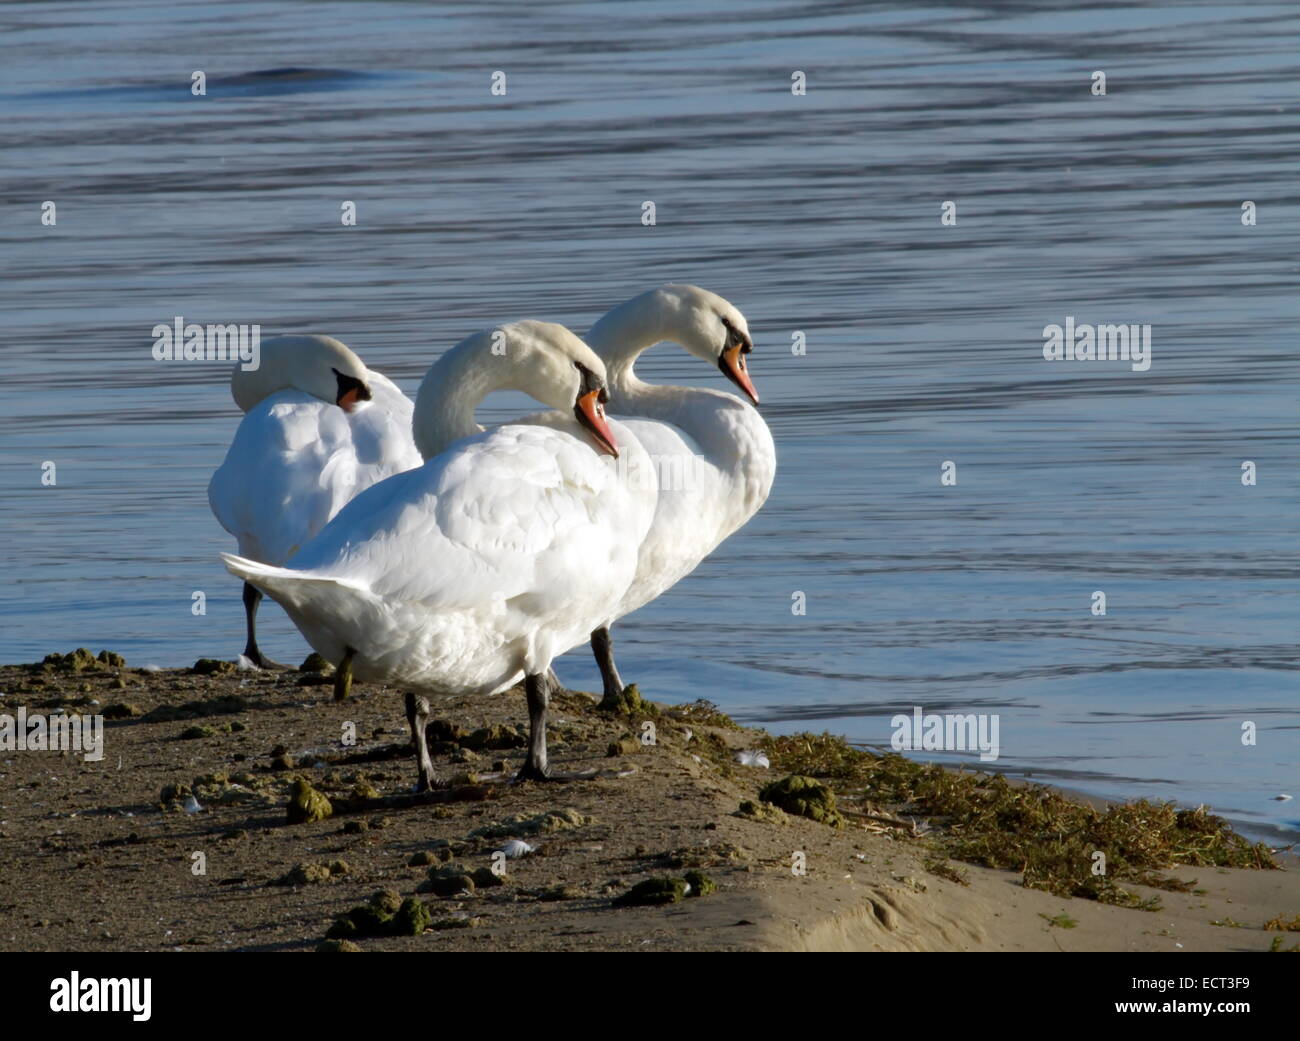 Three white swans standing close on ground and near the lake - Stock Image